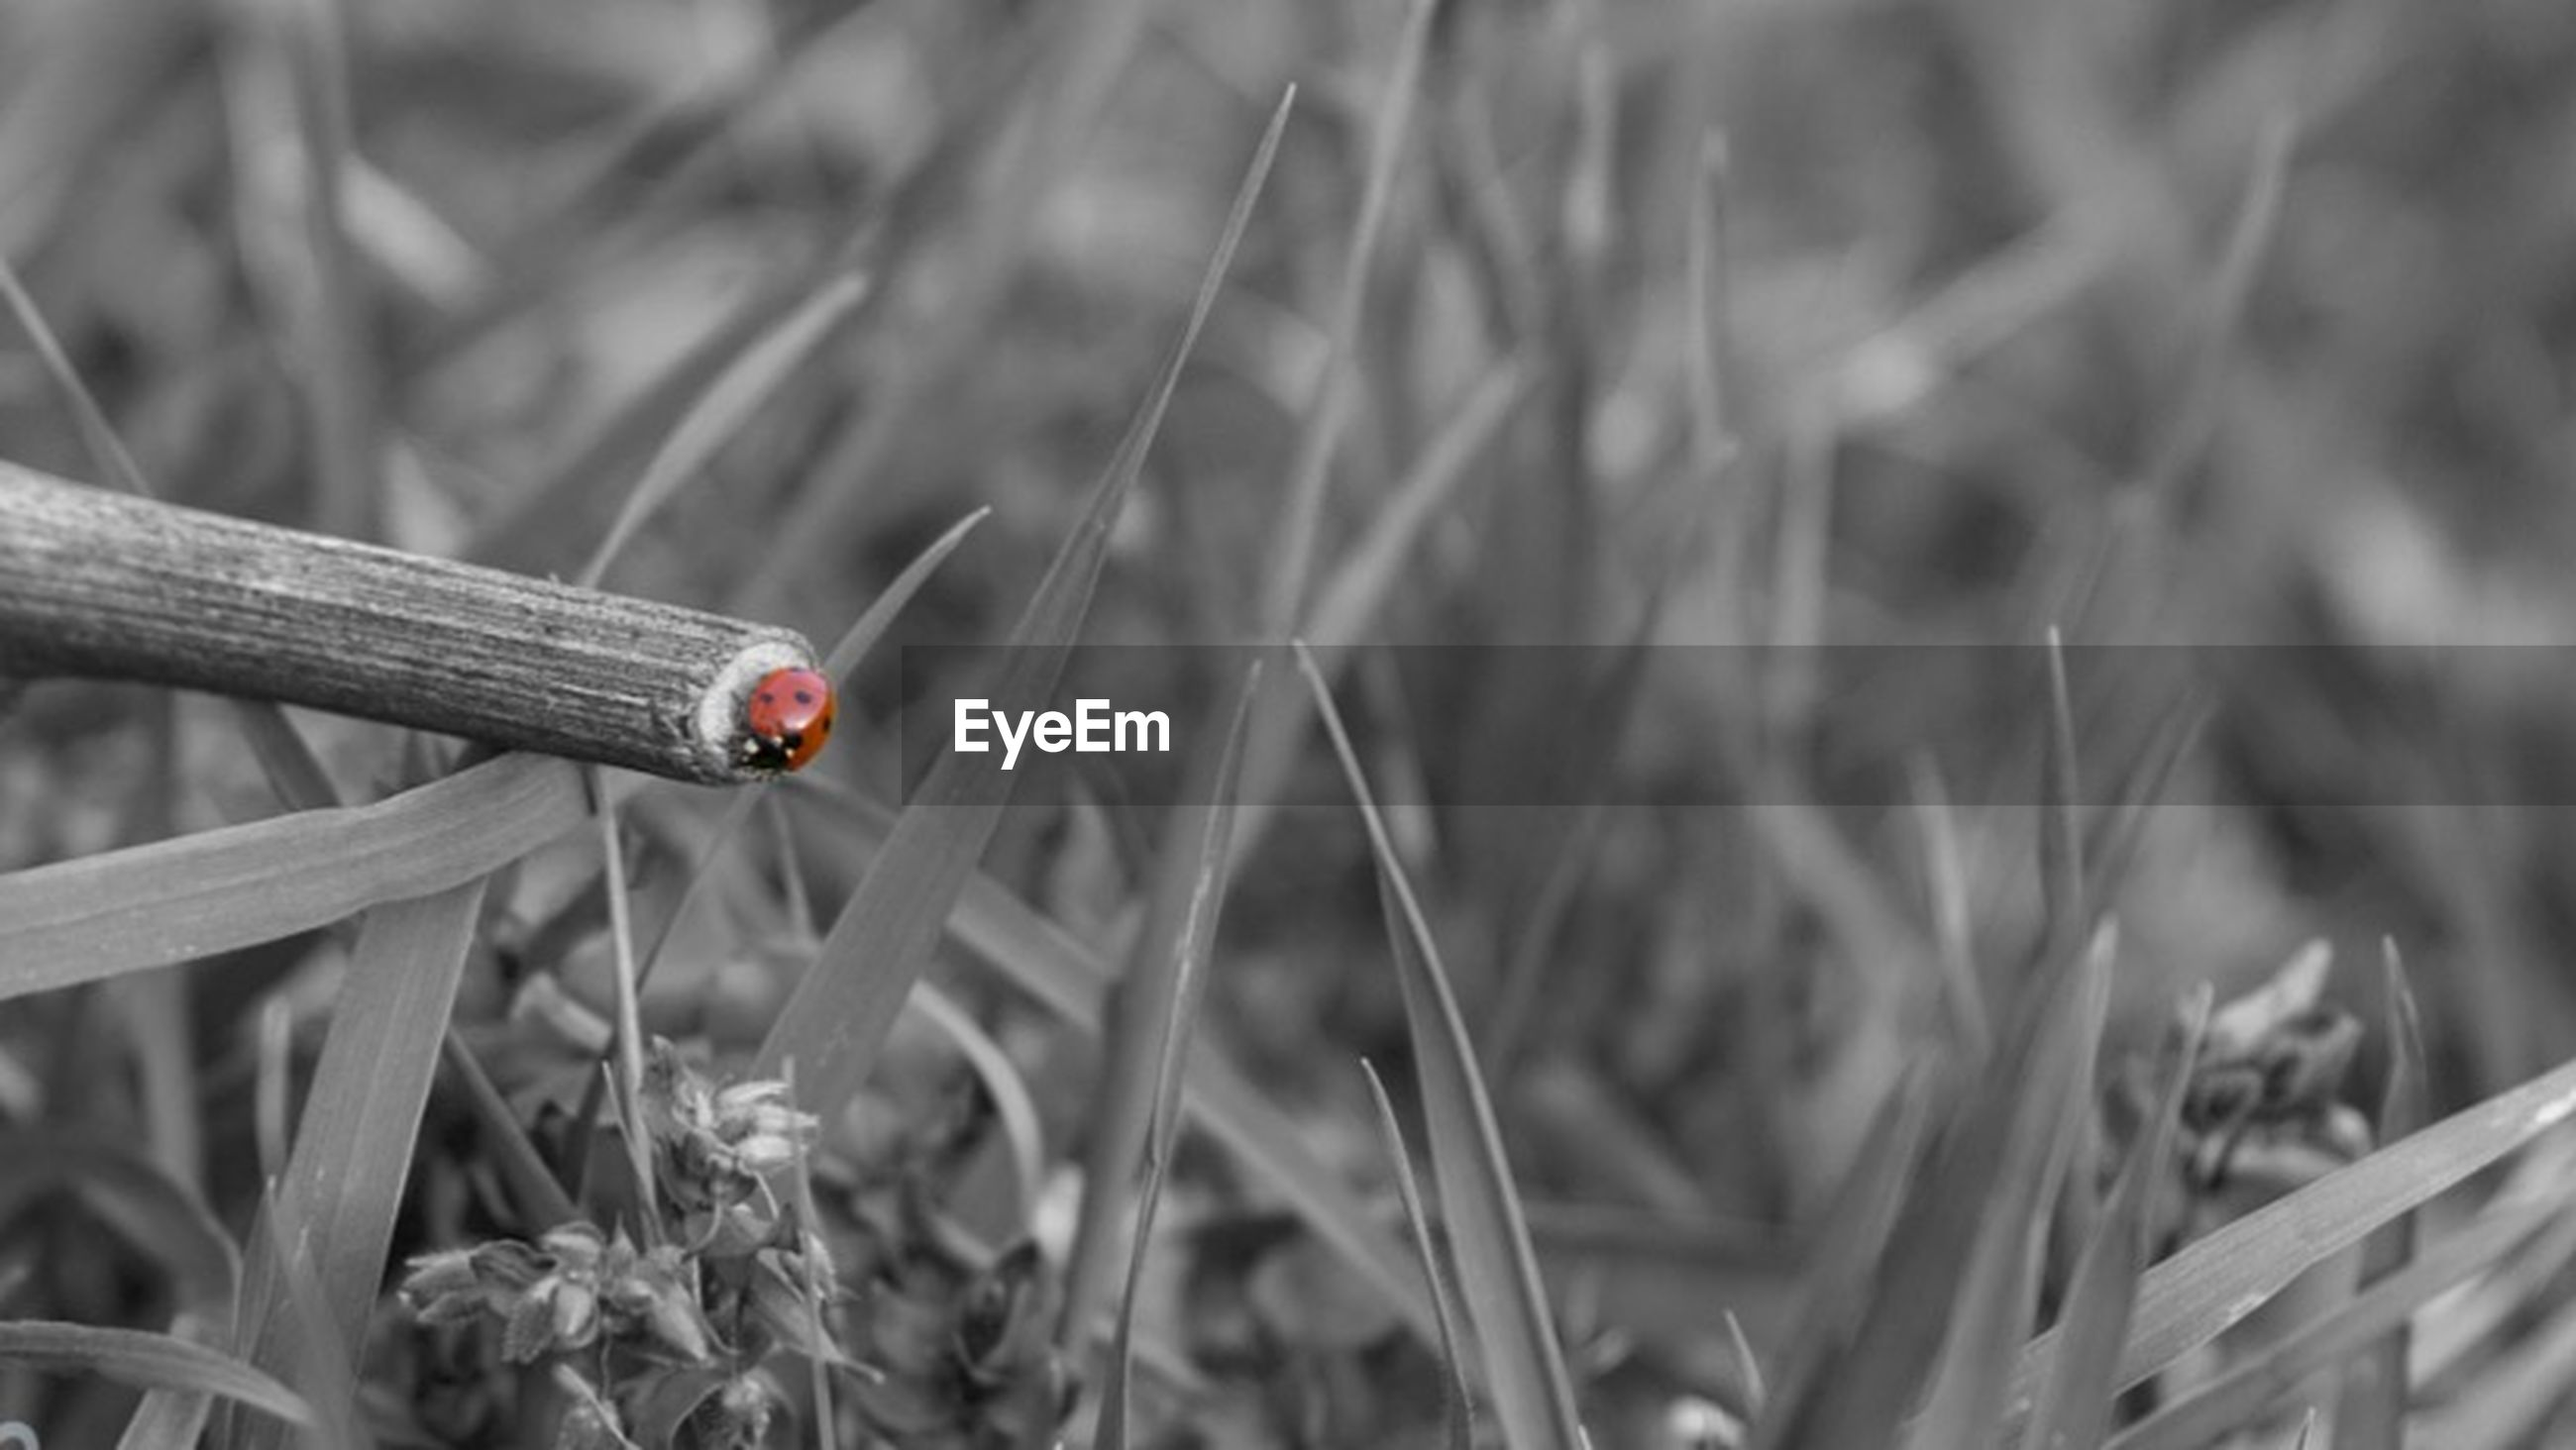 insect, one animal, animal themes, animals in the wild, wildlife, focus on foreground, close-up, grass, selective focus, nature, plant, field, day, outdoors, growth, ladybug, beauty in nature, no people, red, fragility